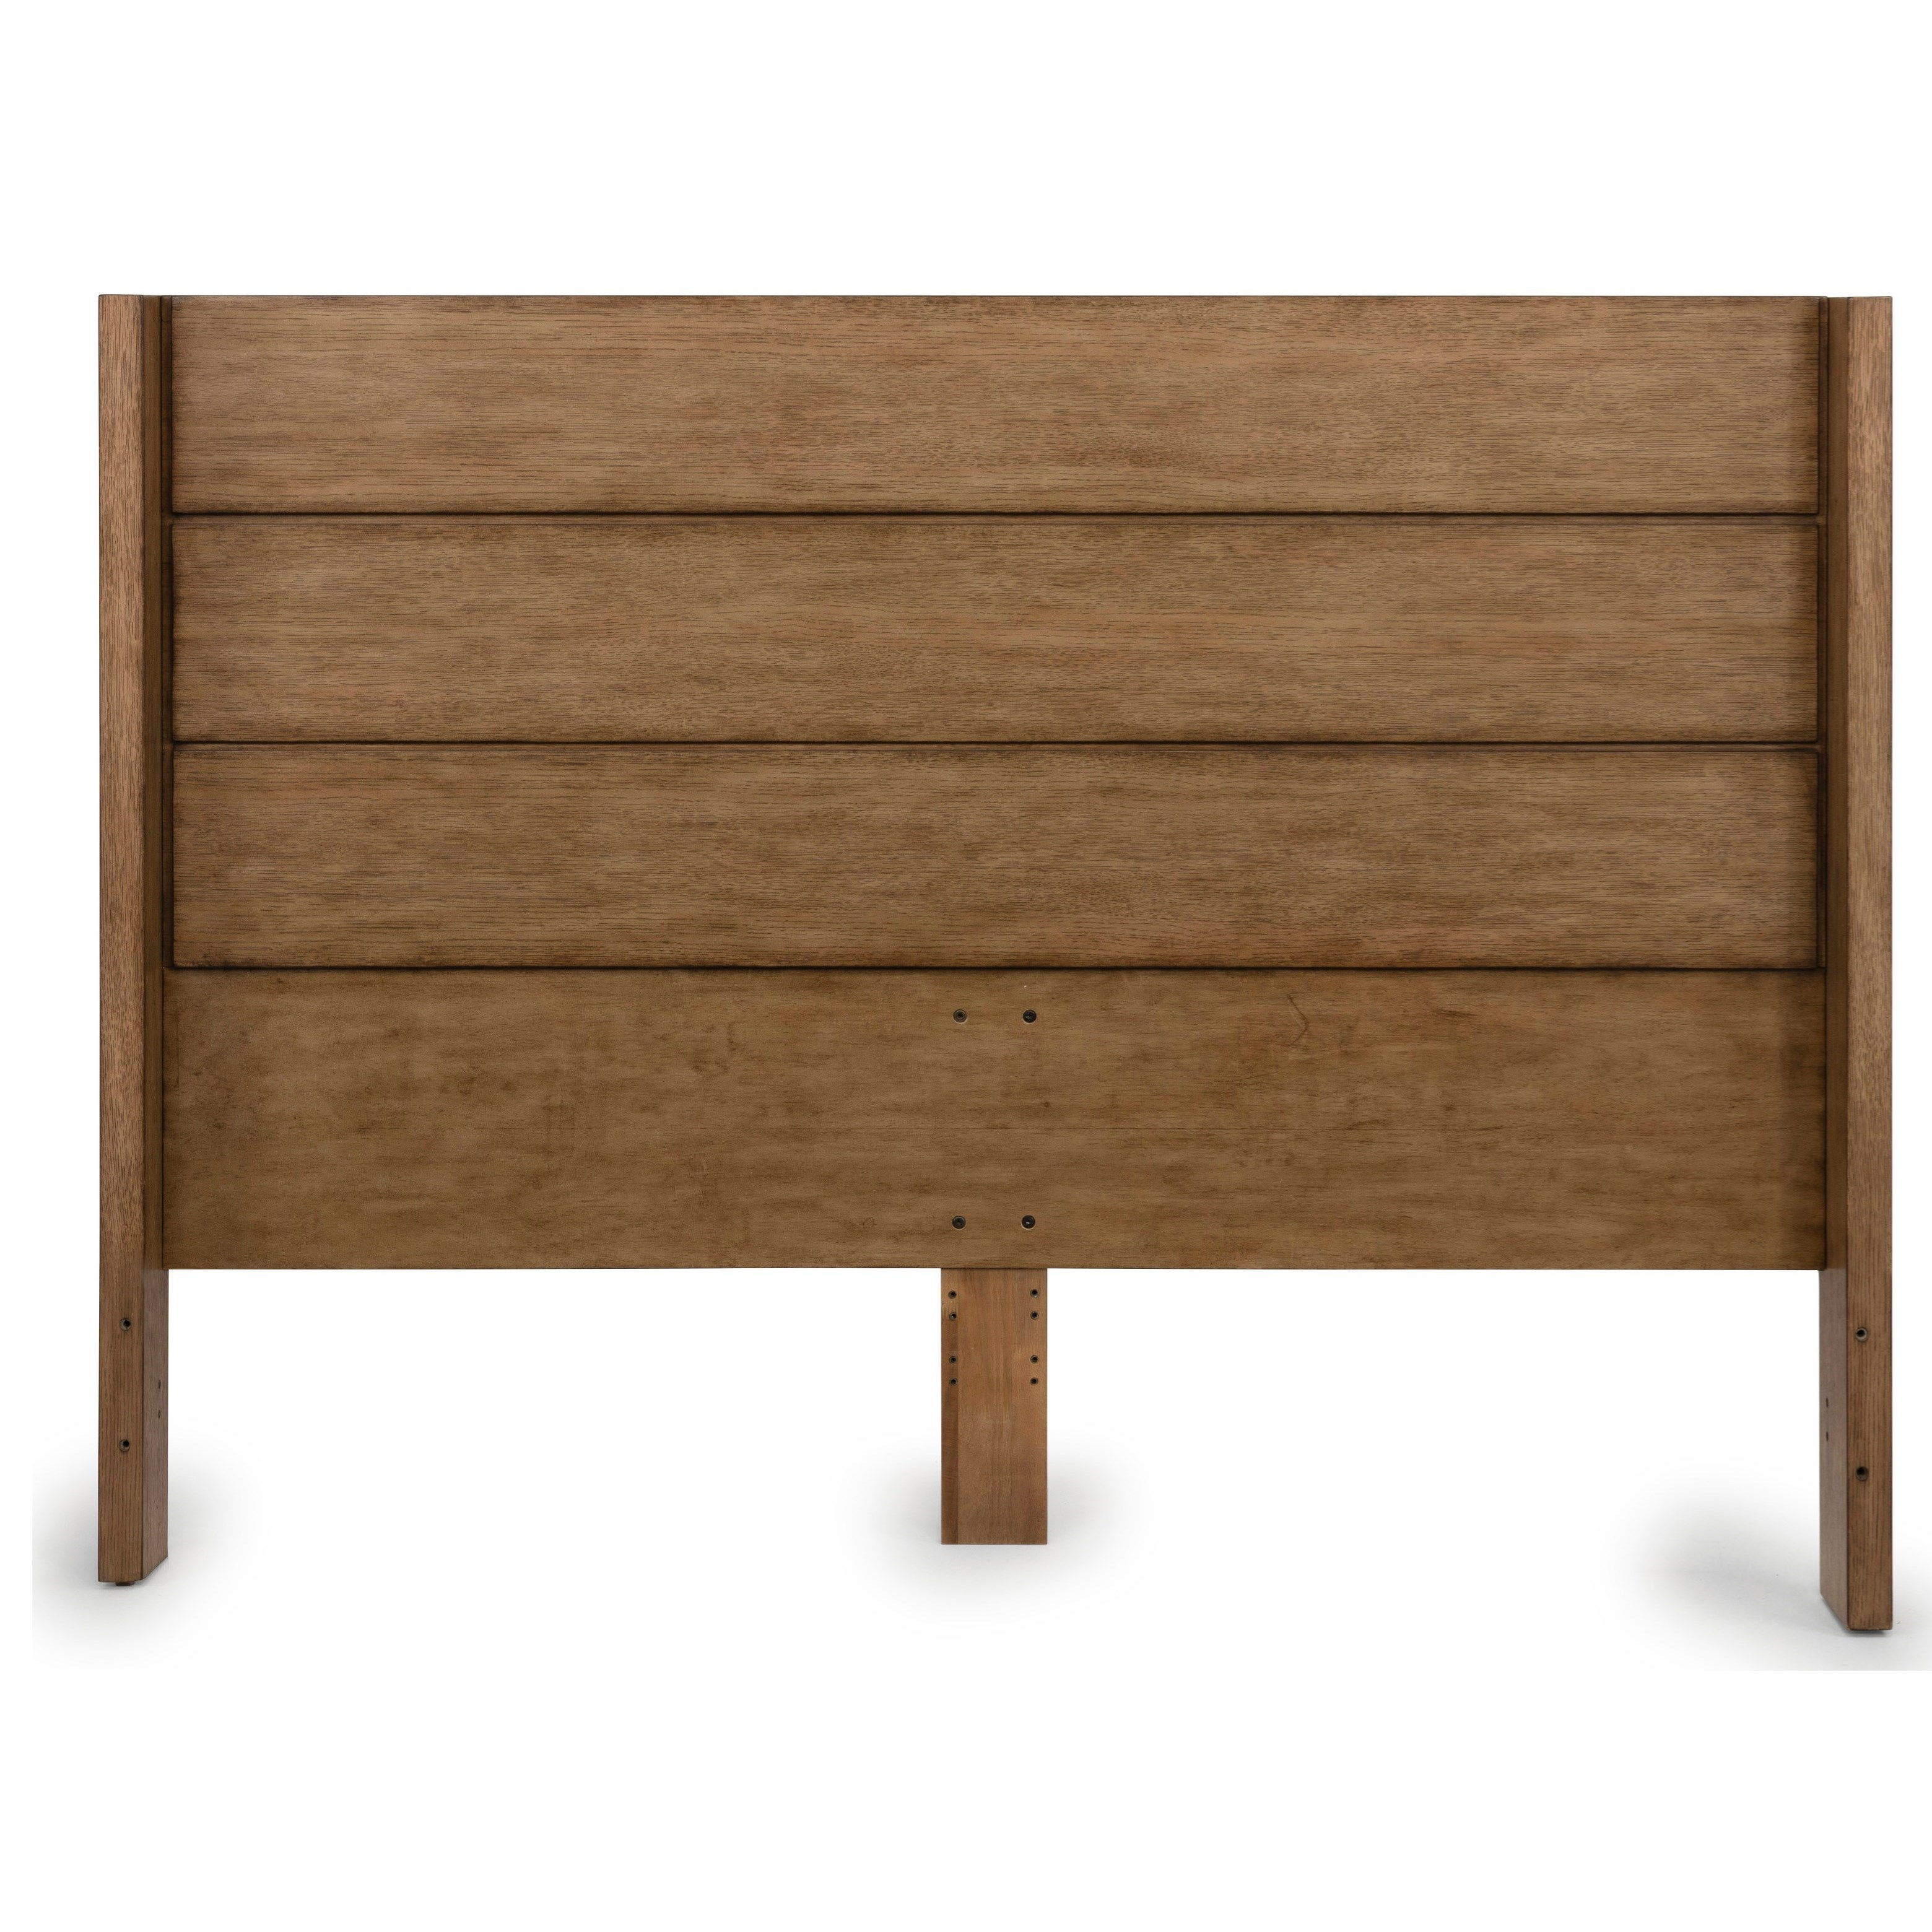 Big Sur Queen Headboard by Homestyles at Value City Furniture